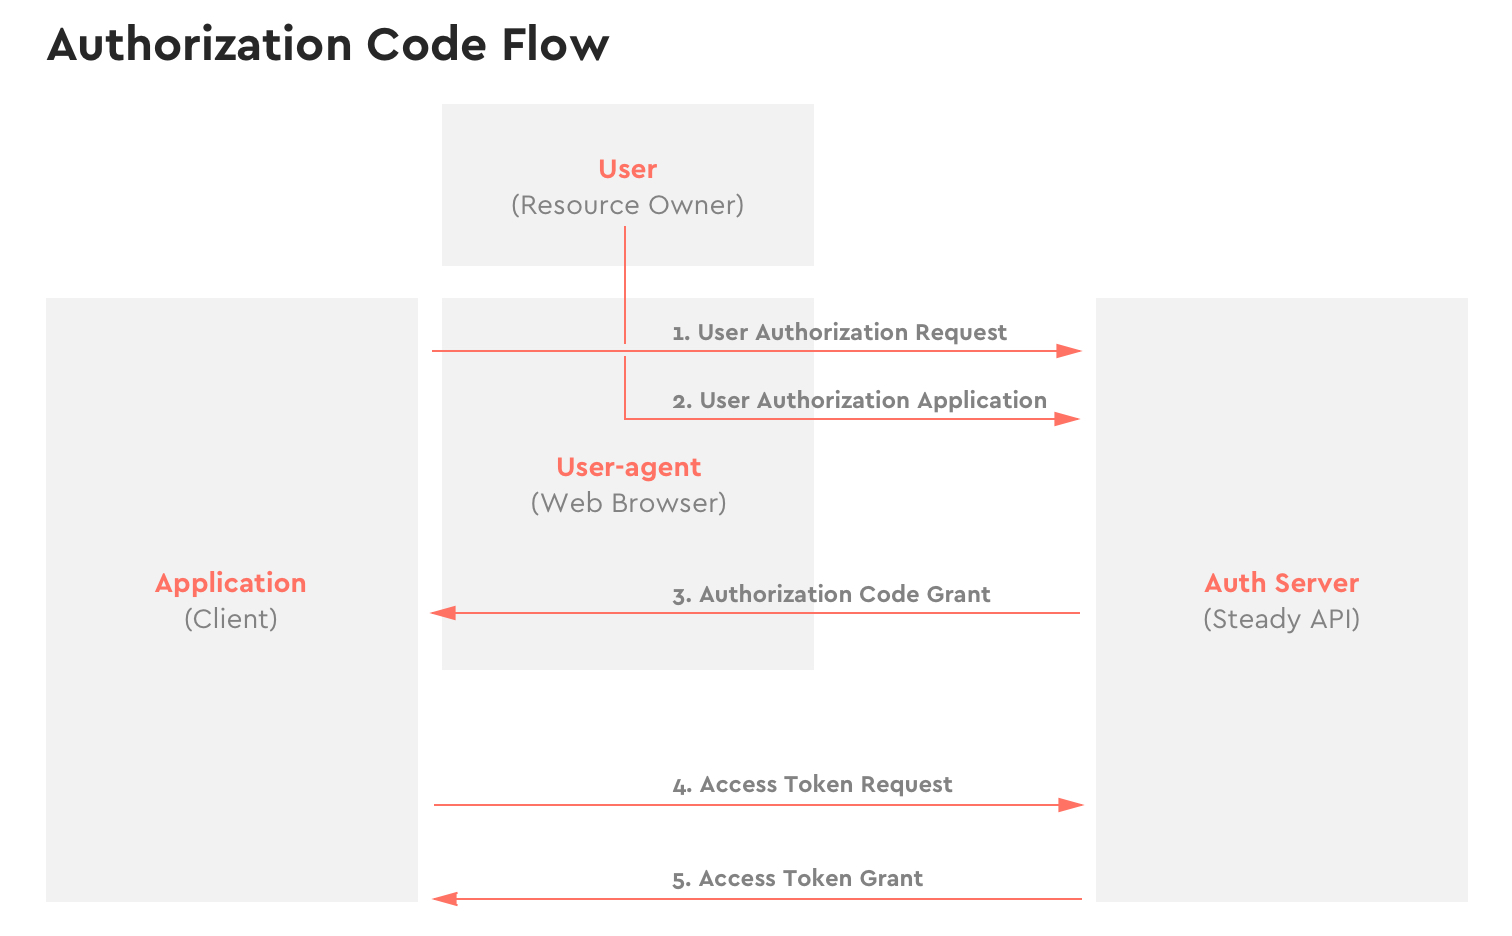 Authorization Code Flow